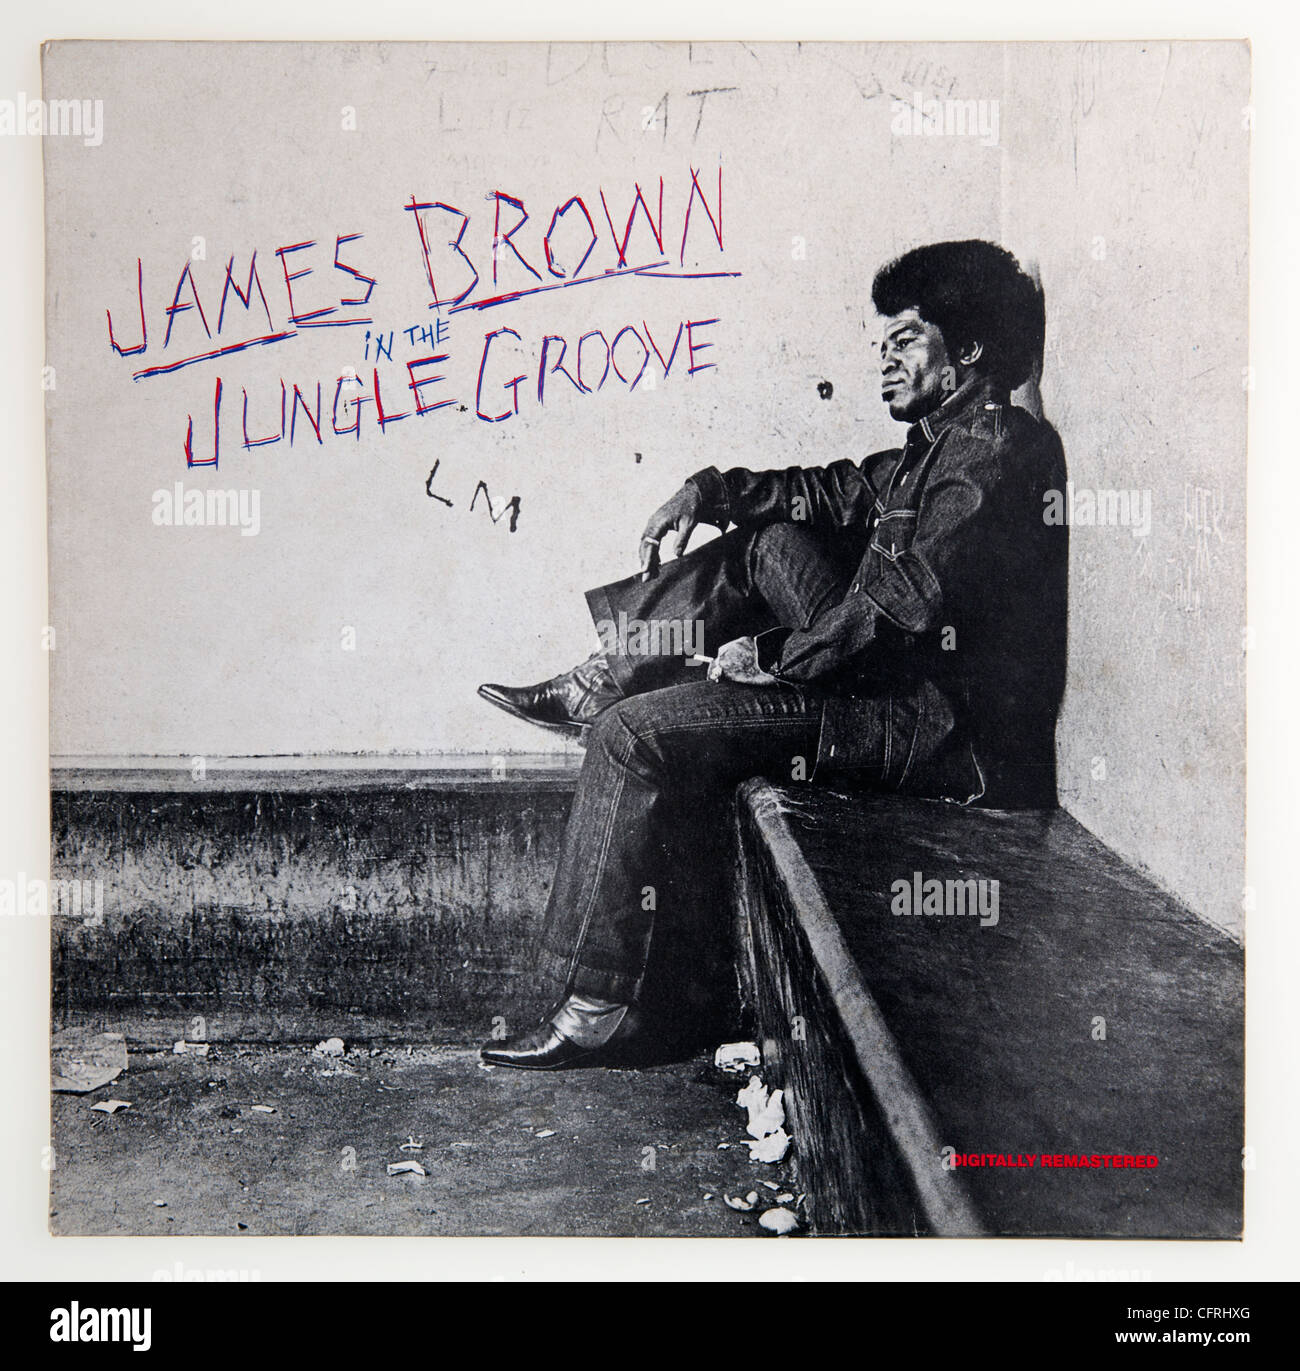 James Brown In The Jungle Groove album cover Stock Photo: 44159544